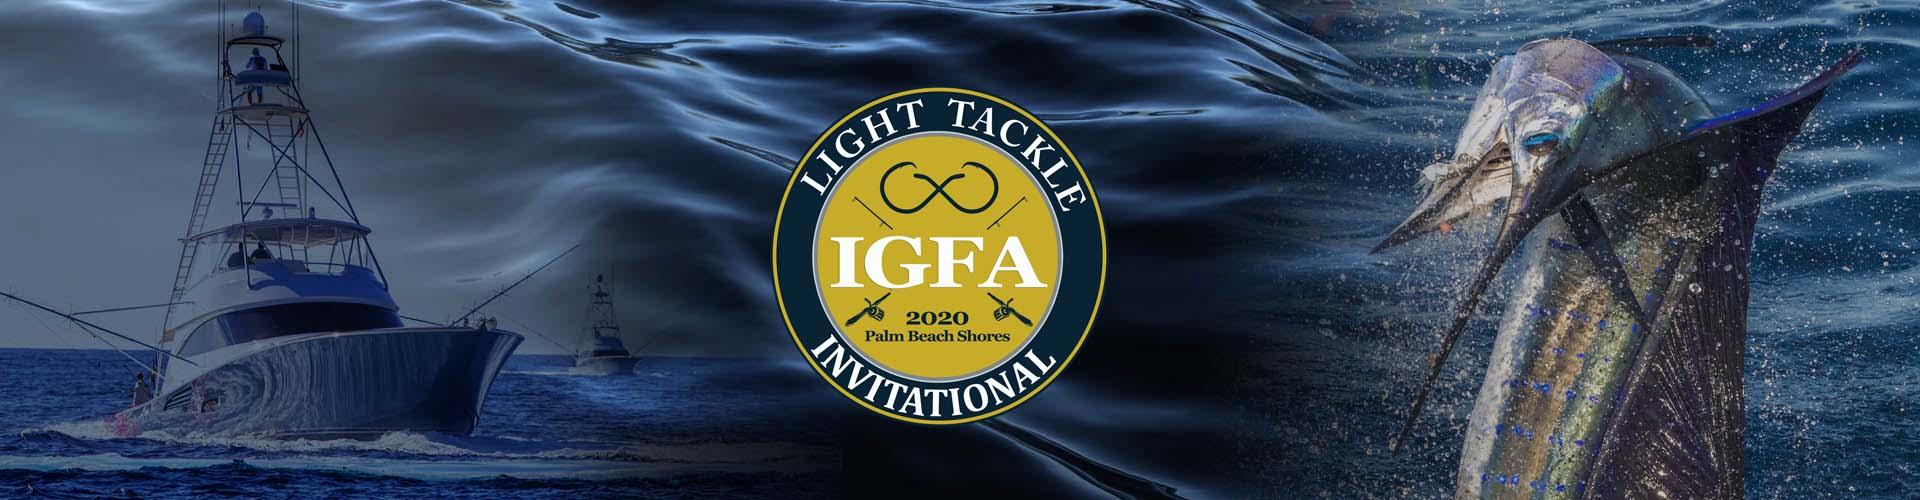 2020 IGFA Light Tackle Invitational